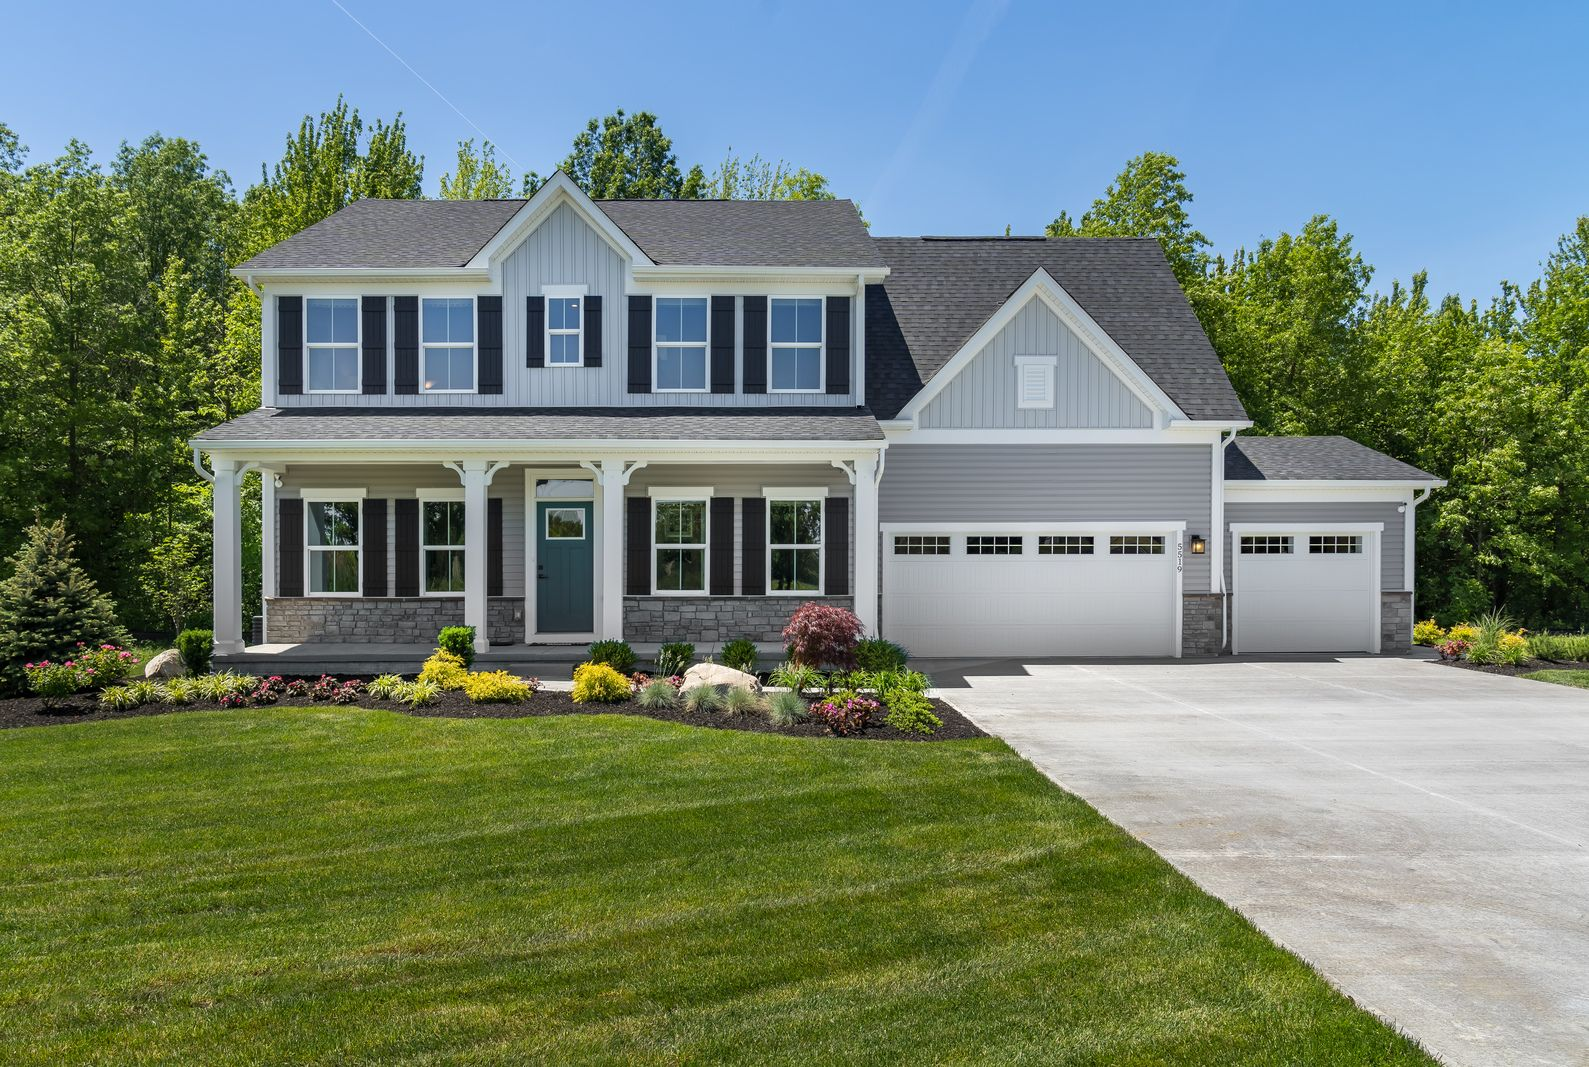 Move into your new home at Fort Scott this July!:Located in Southwest Schools, Fort Scott offers a collection of wonderful amenities only 5 minutes from 275. Take advantageof ourPowell Quick Move-in and have your brand new home ready by Summer.